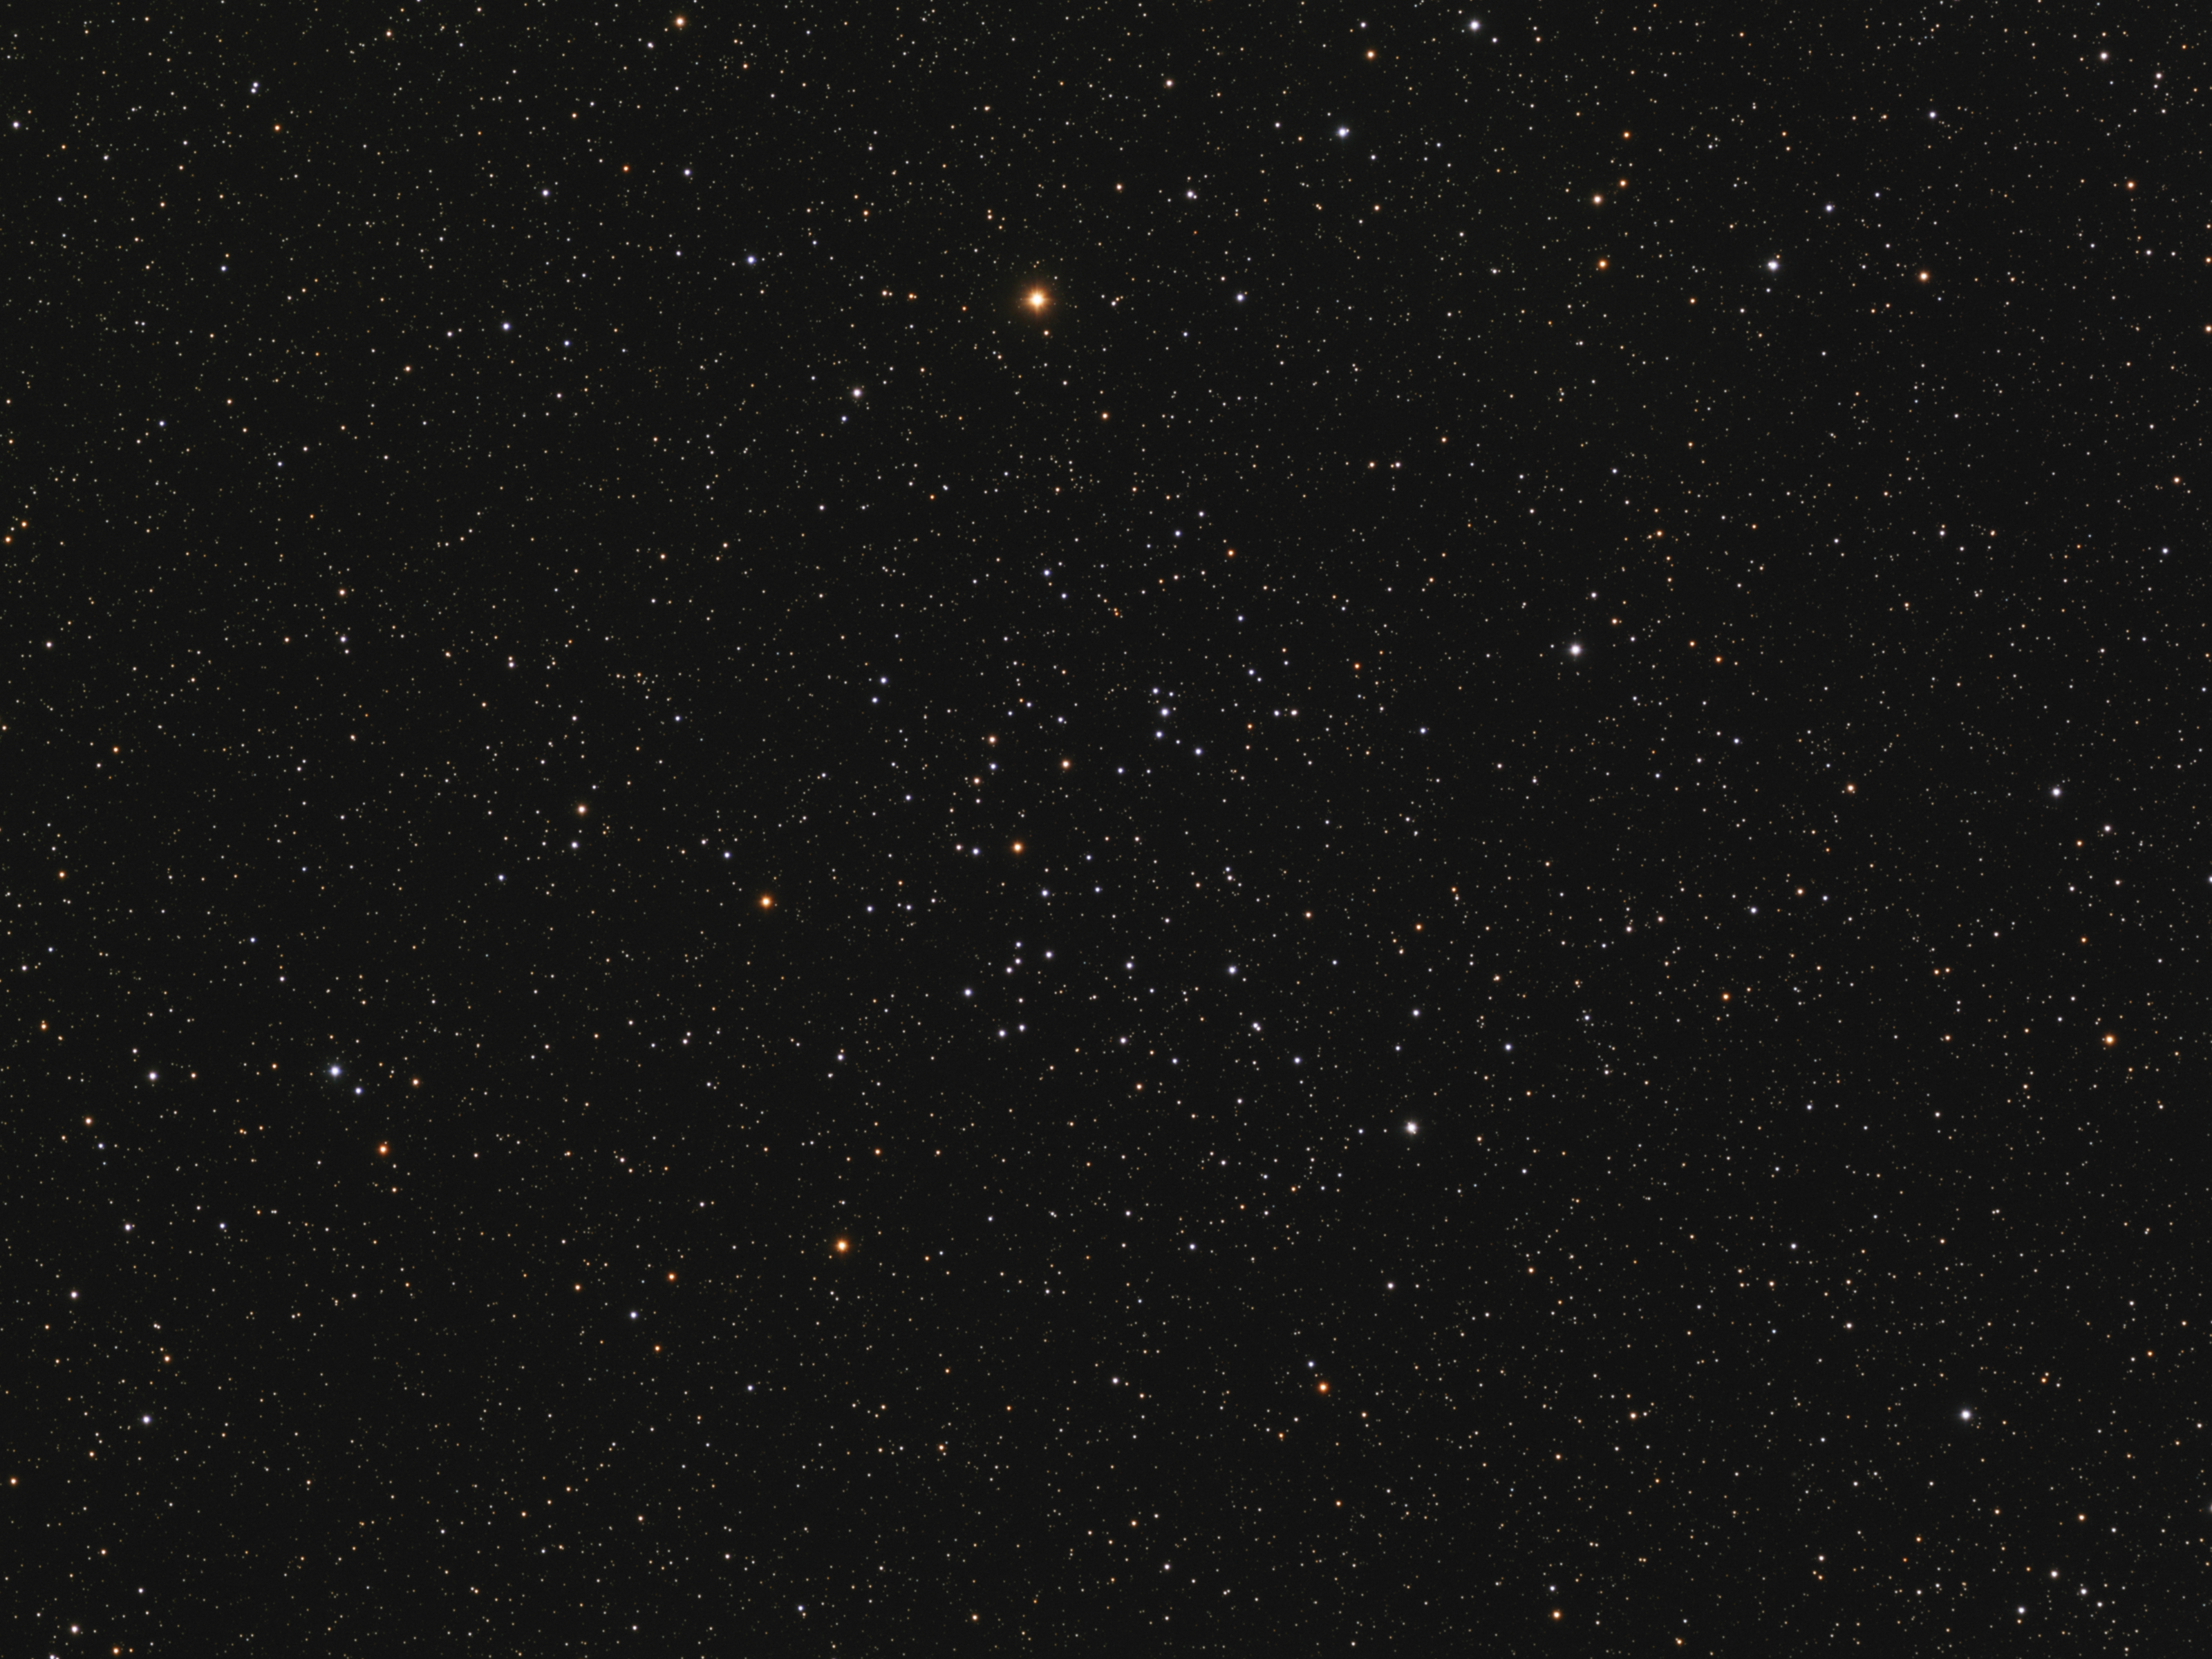 NGC 7209 - Cluster in Lacerta